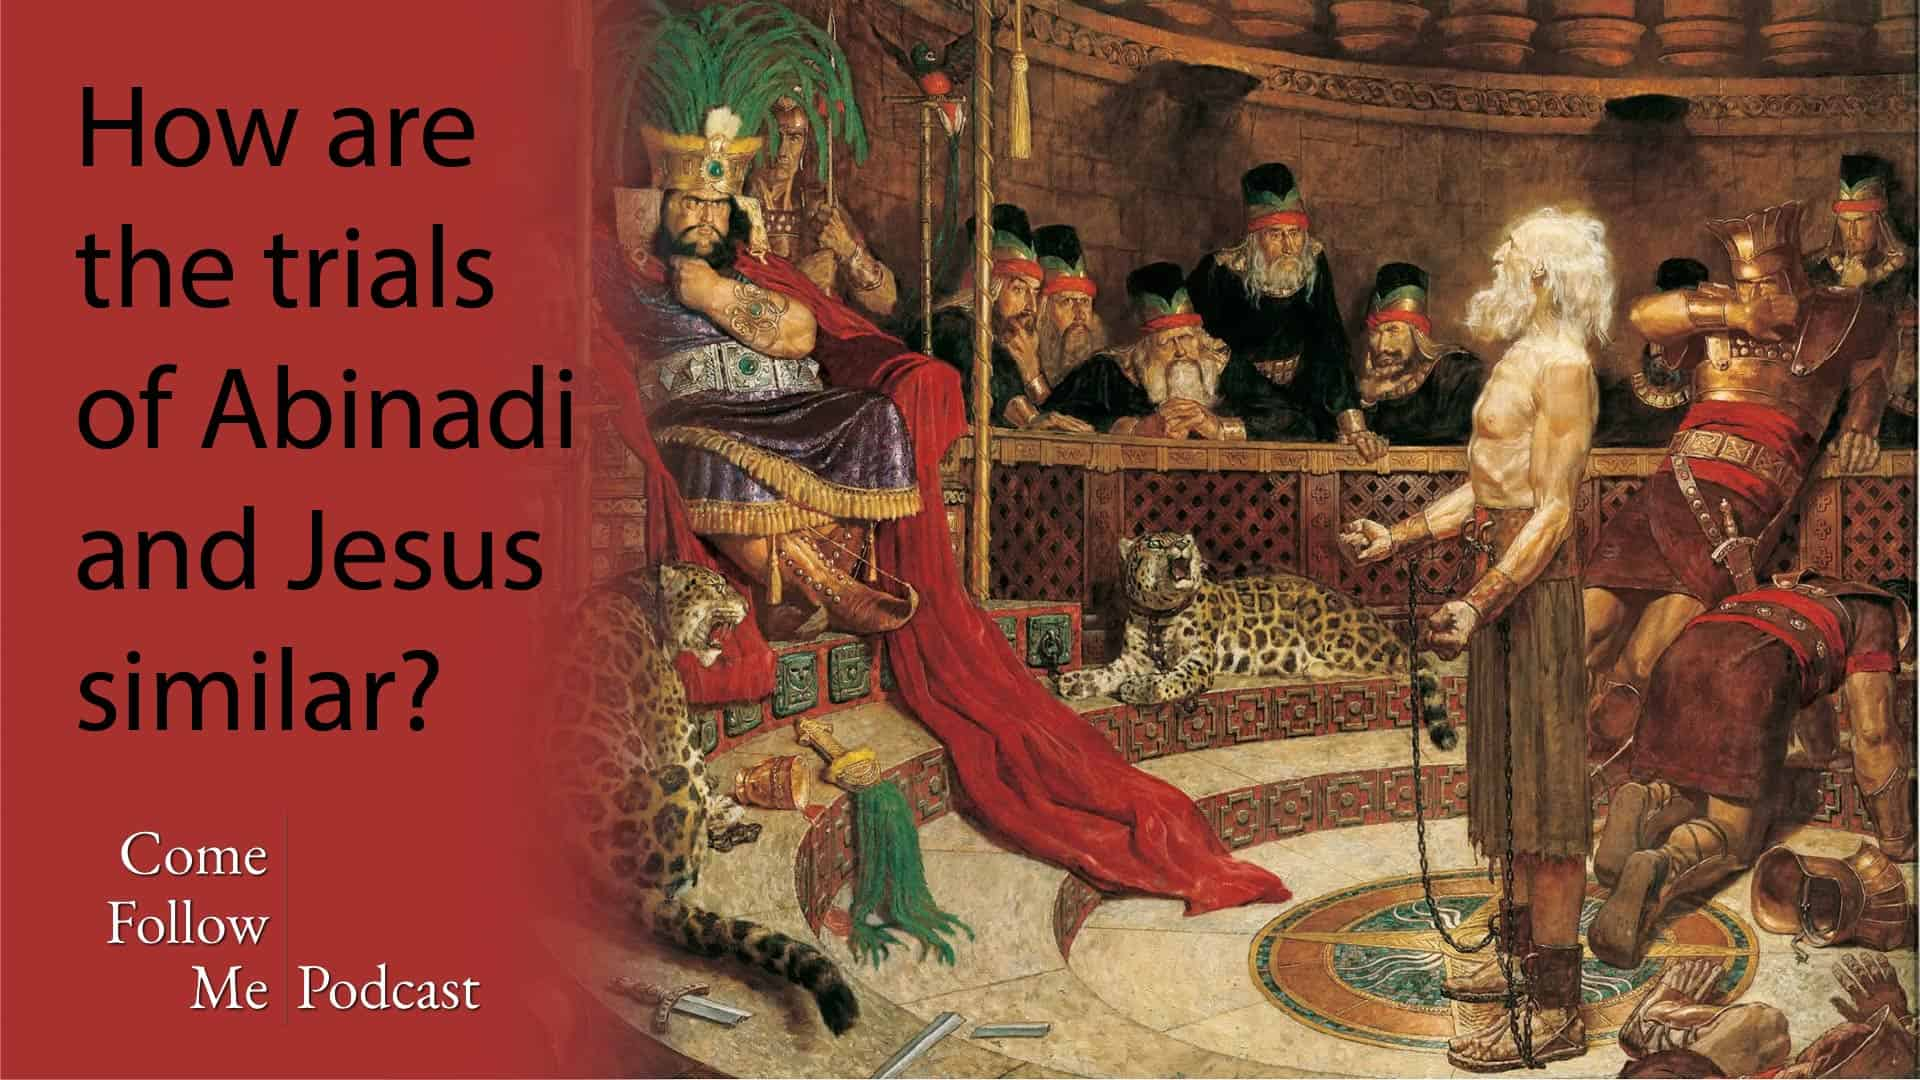 How are the trials of Abinadi and Jesus similar?